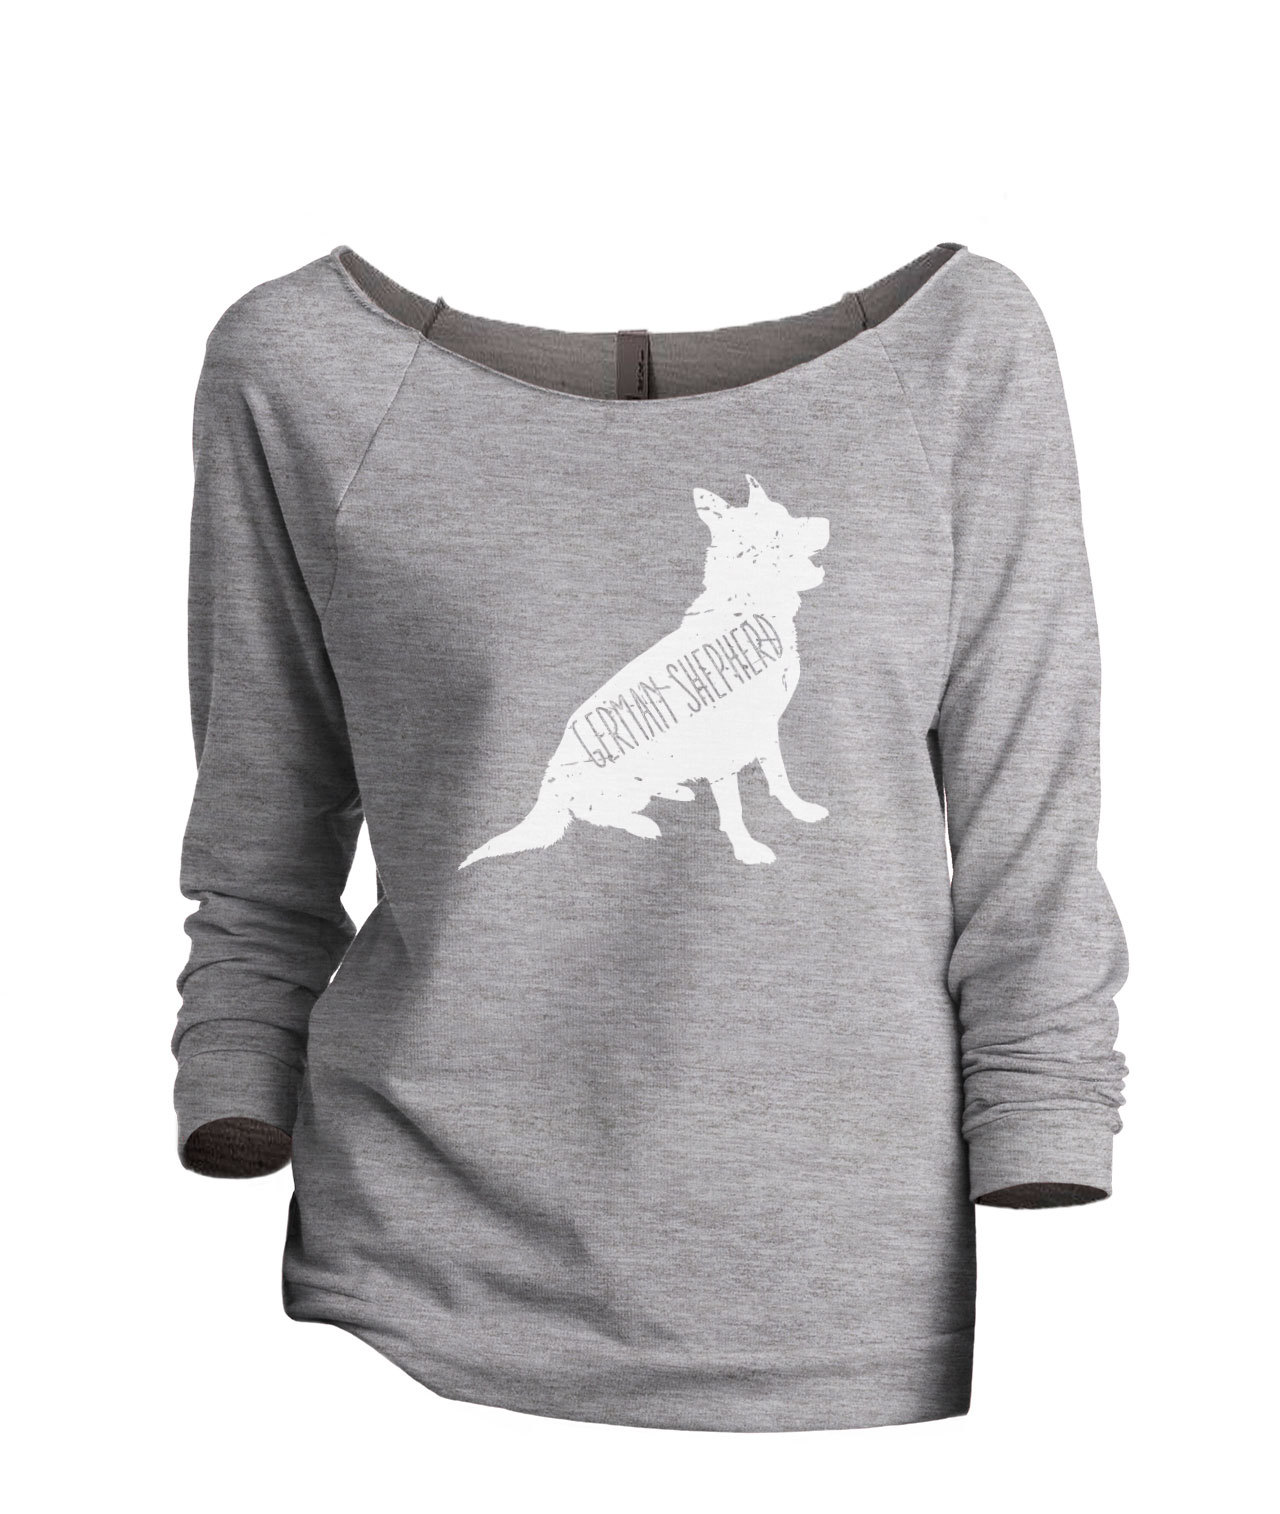 Primary image for Thread Tank German Shepherd Dog Silhouette Women's Slouchy 3/4 Sleeves Raglan Sw